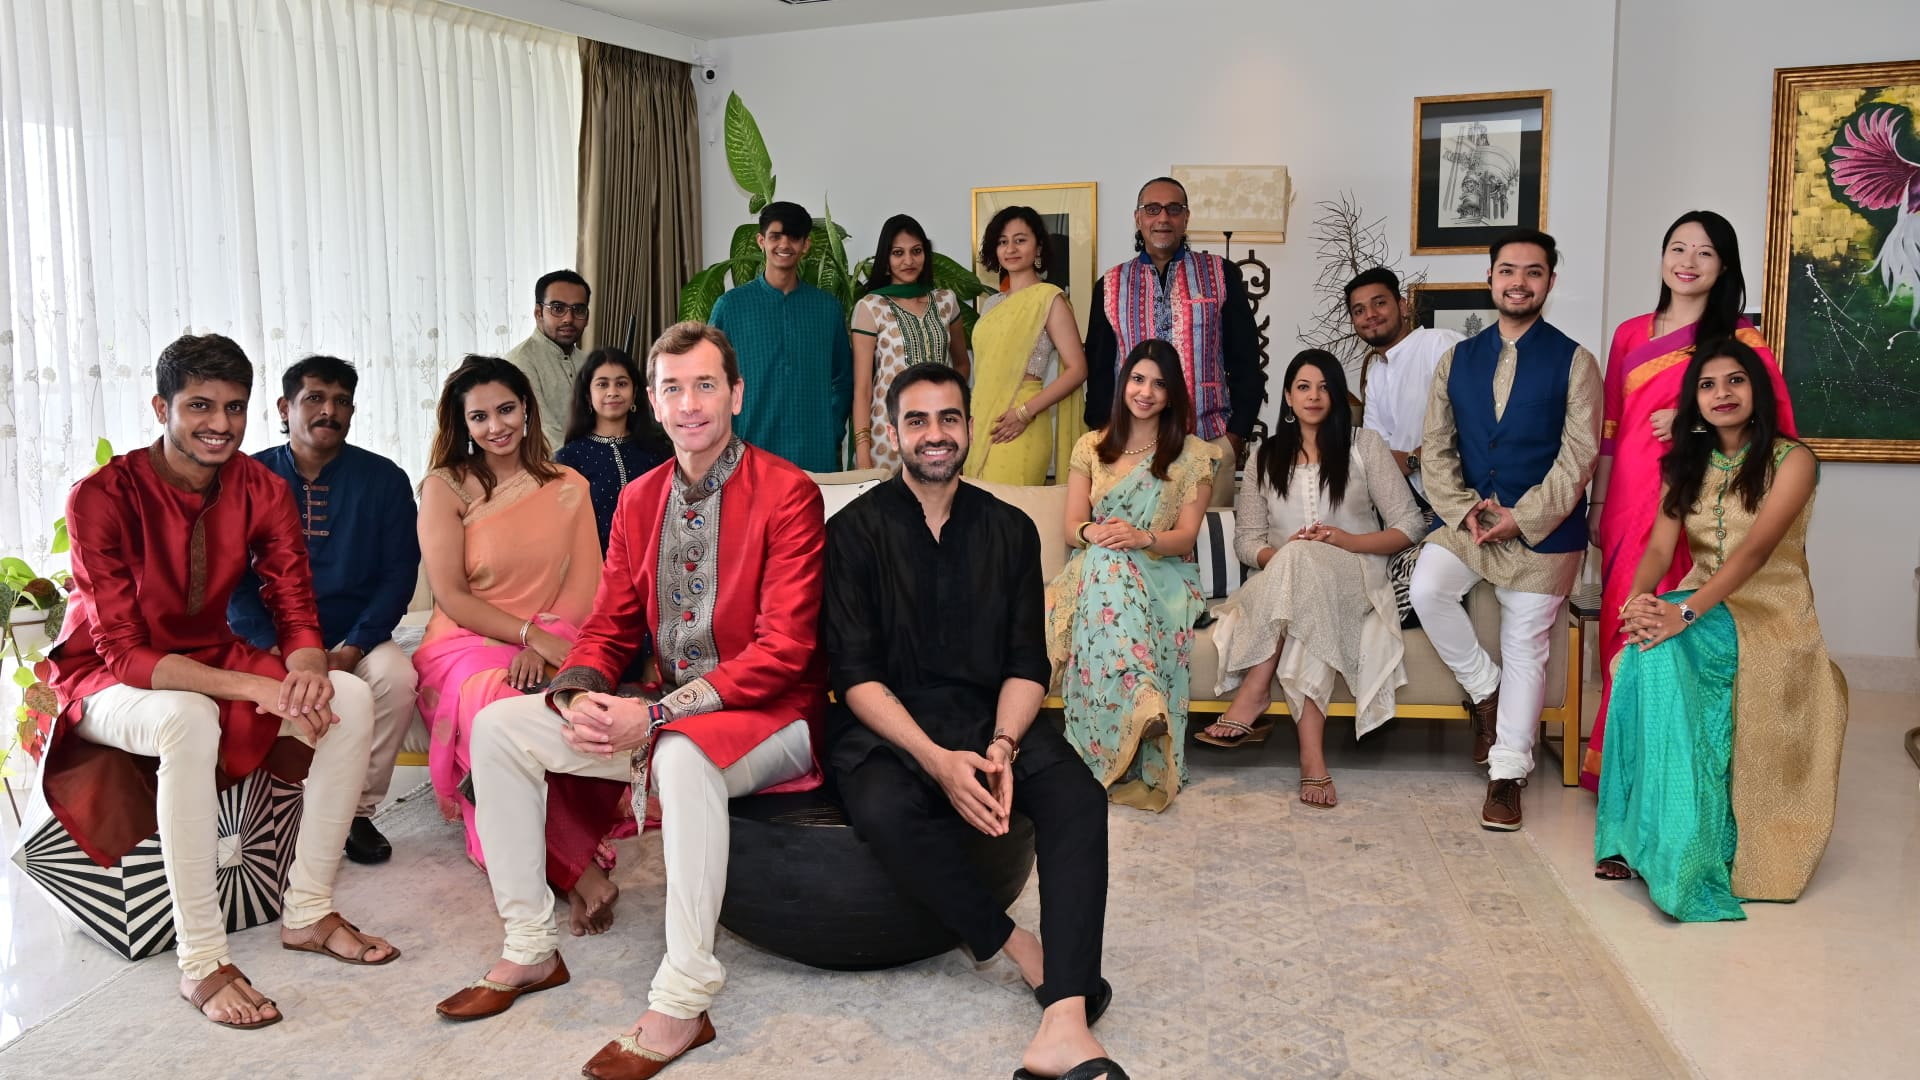 Indian asset management firm True Beacon gathered at co-founder, Nikhil Kamath's home.